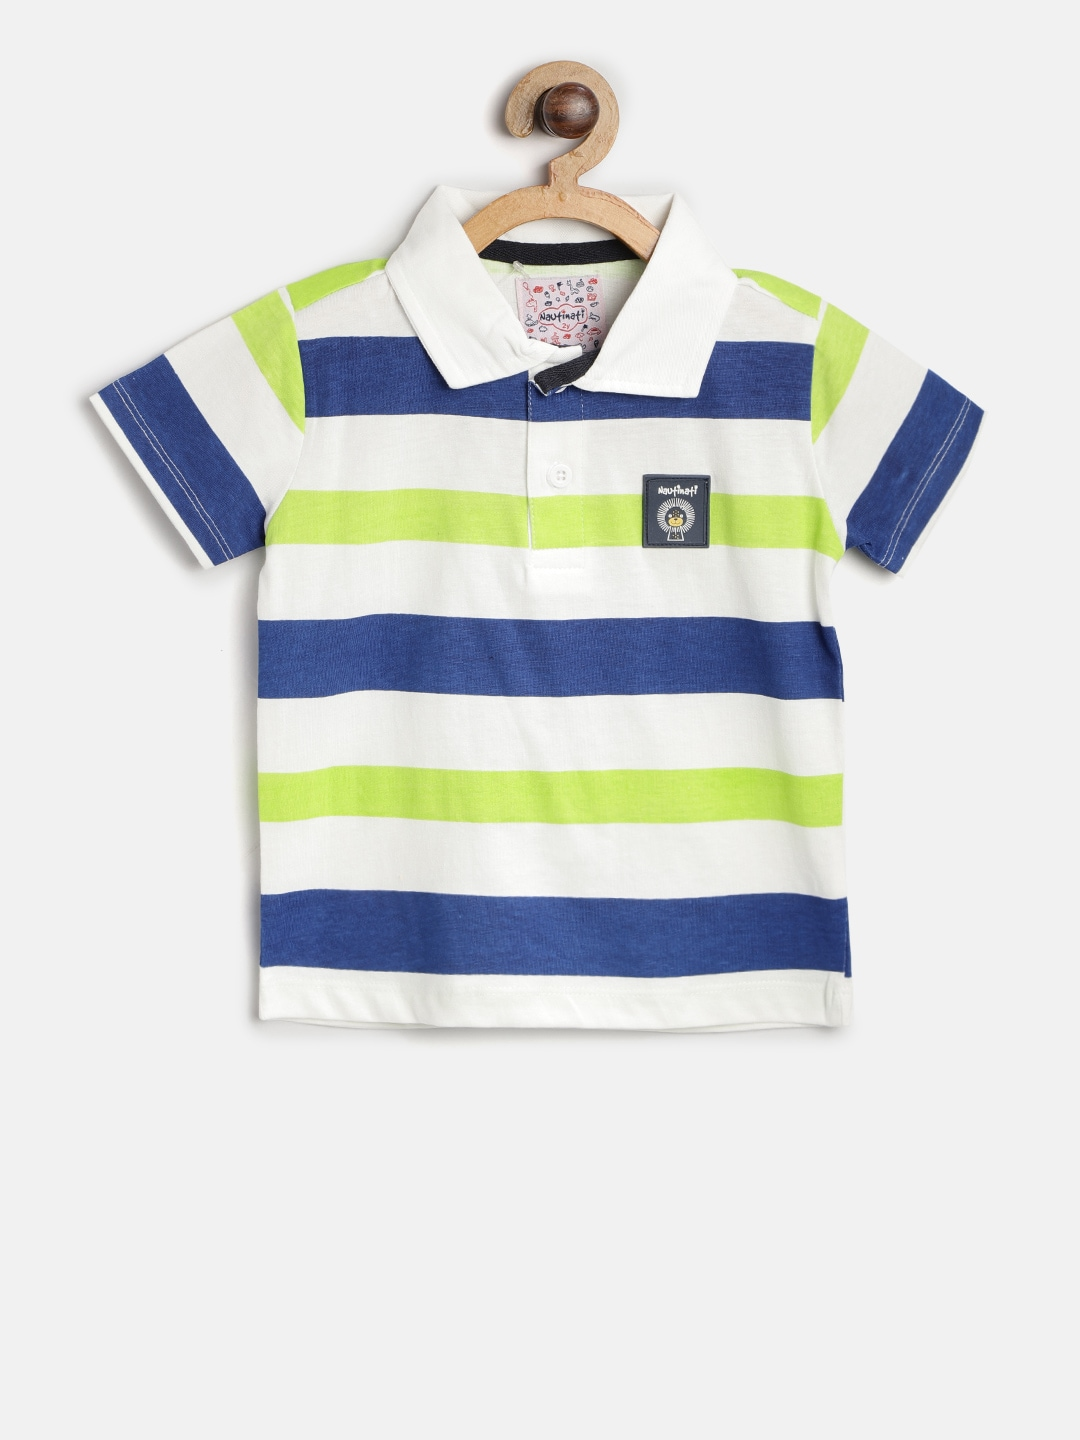 753ba928c40d Kids T shirts - Buy T shirts for Kids Online in India Myntra